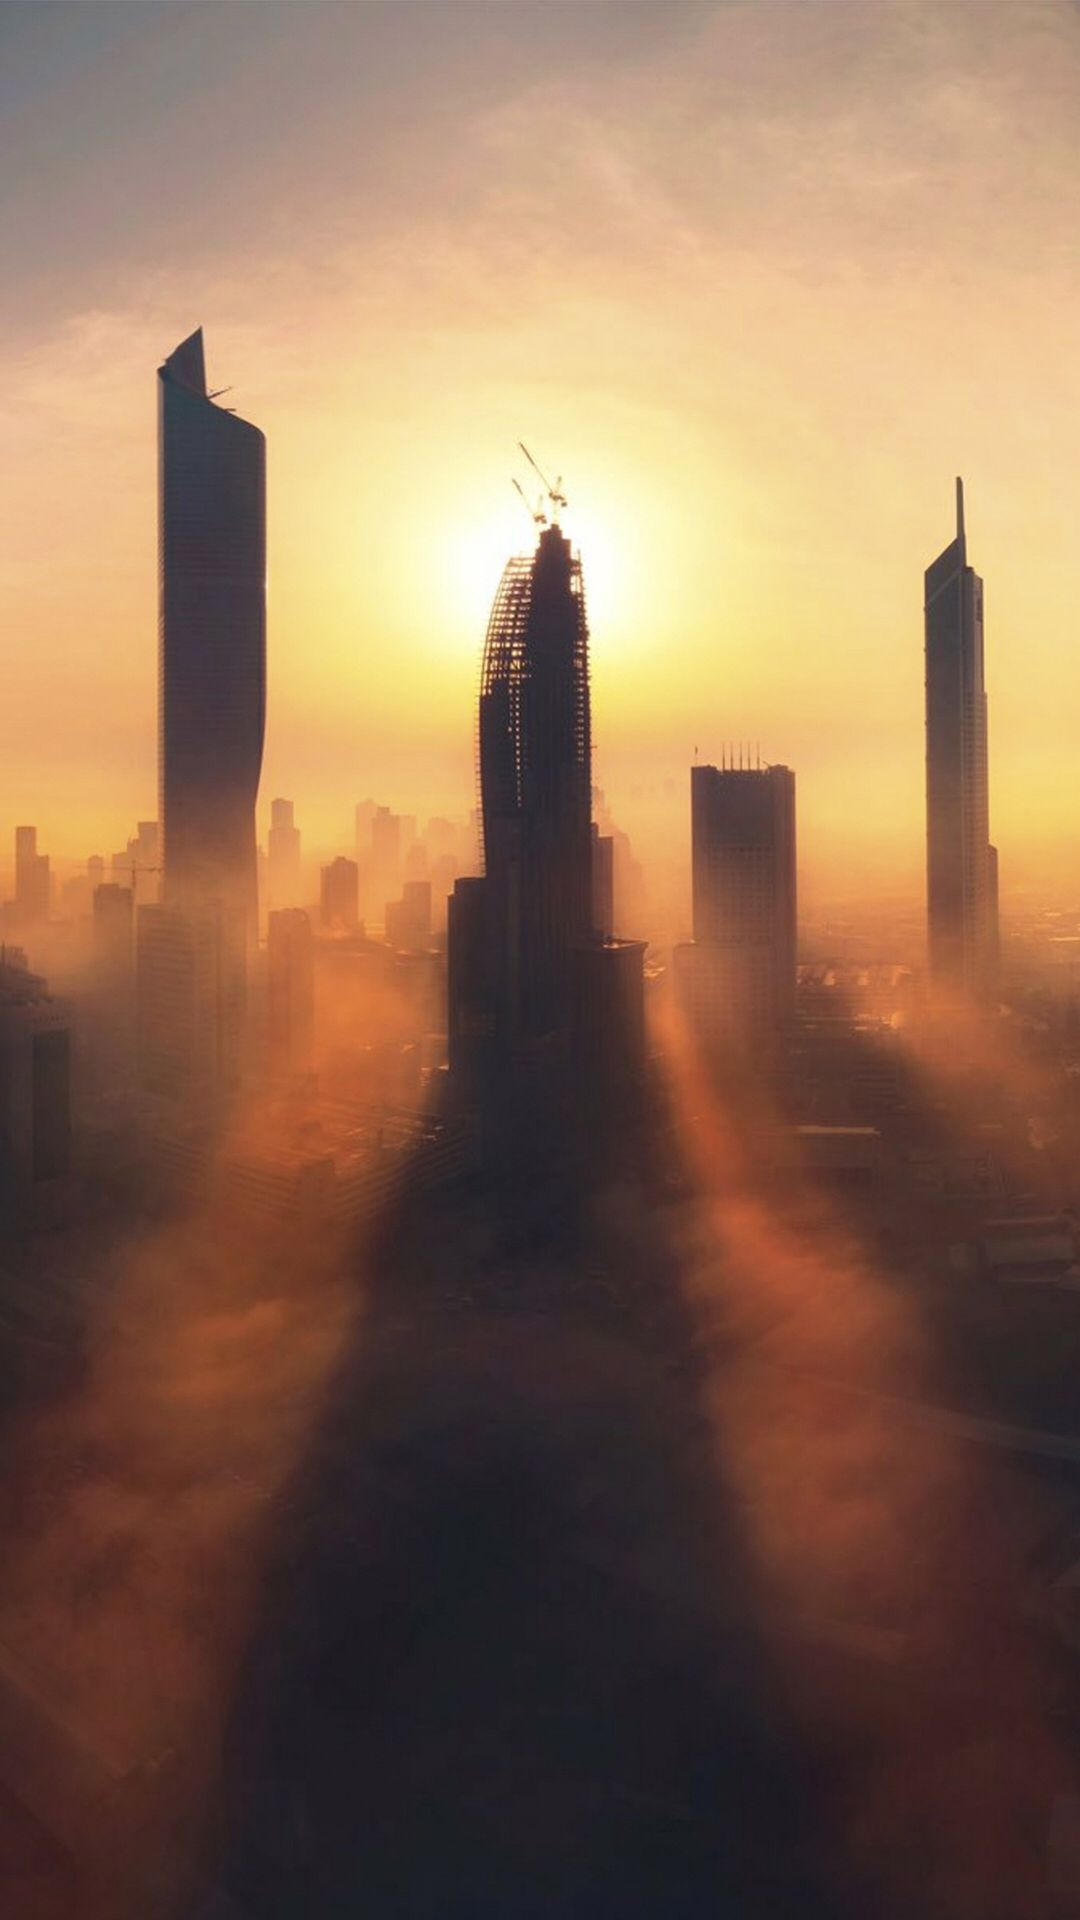 City skyscrapers wallpaper for your iPhone XS from Vibe